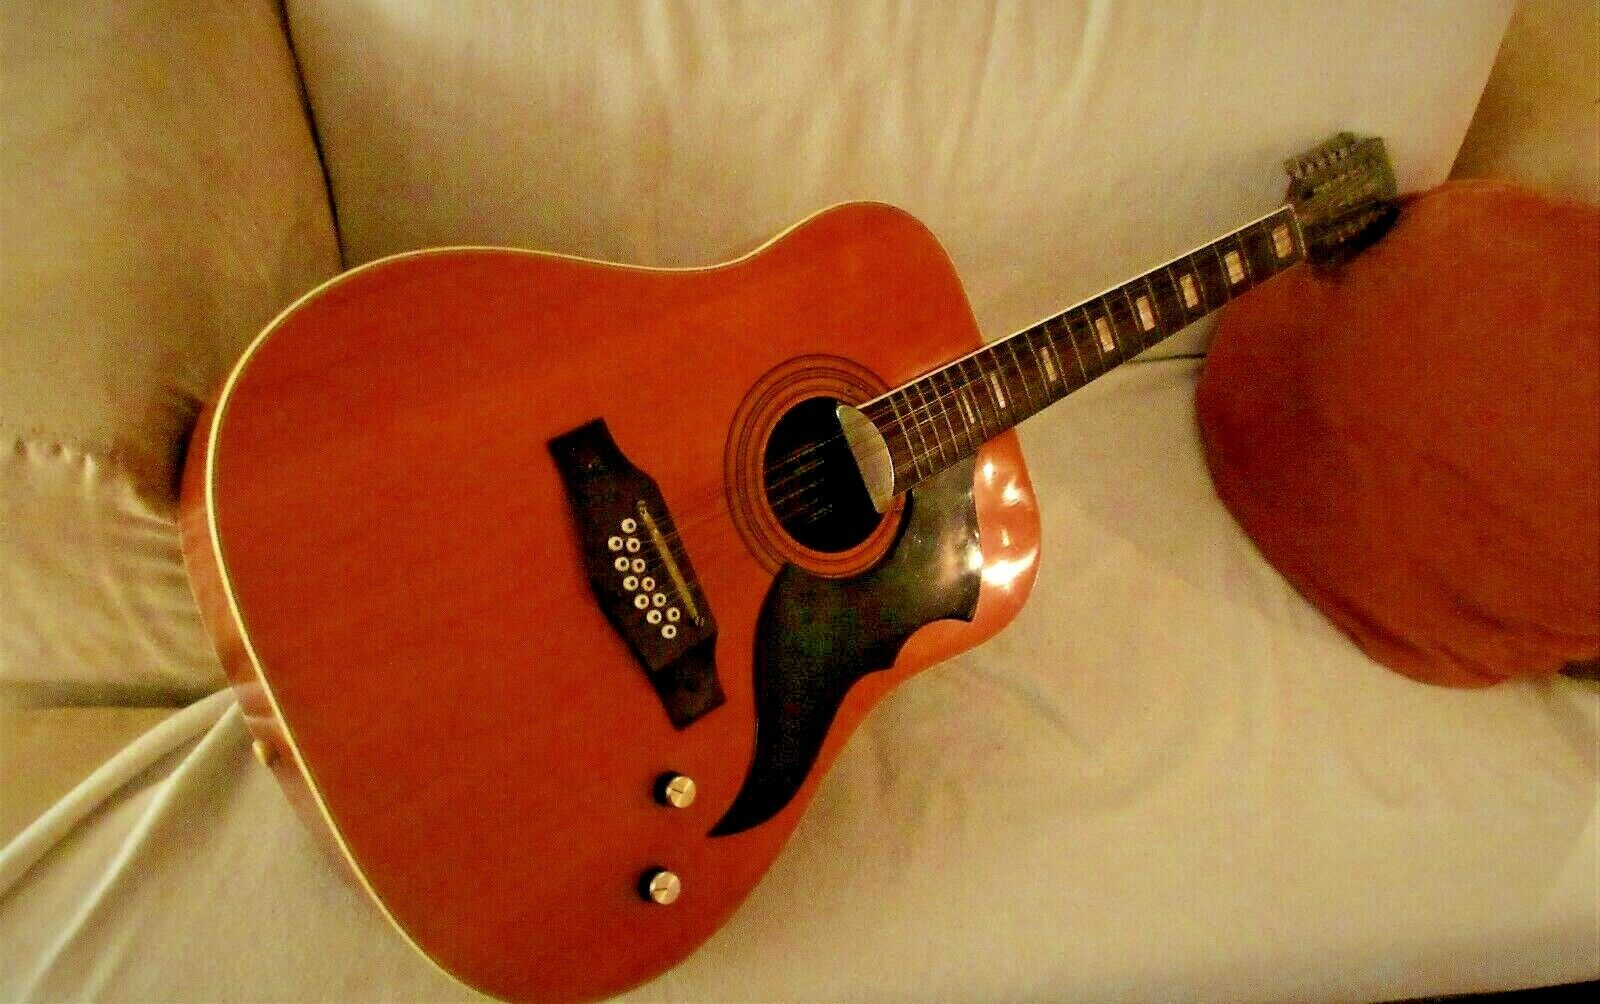 AMAZING VINTAGE EKO RANGER 12 STRING ACOUSTIC ELECTRIC QUITAR ITALY FROM 70s